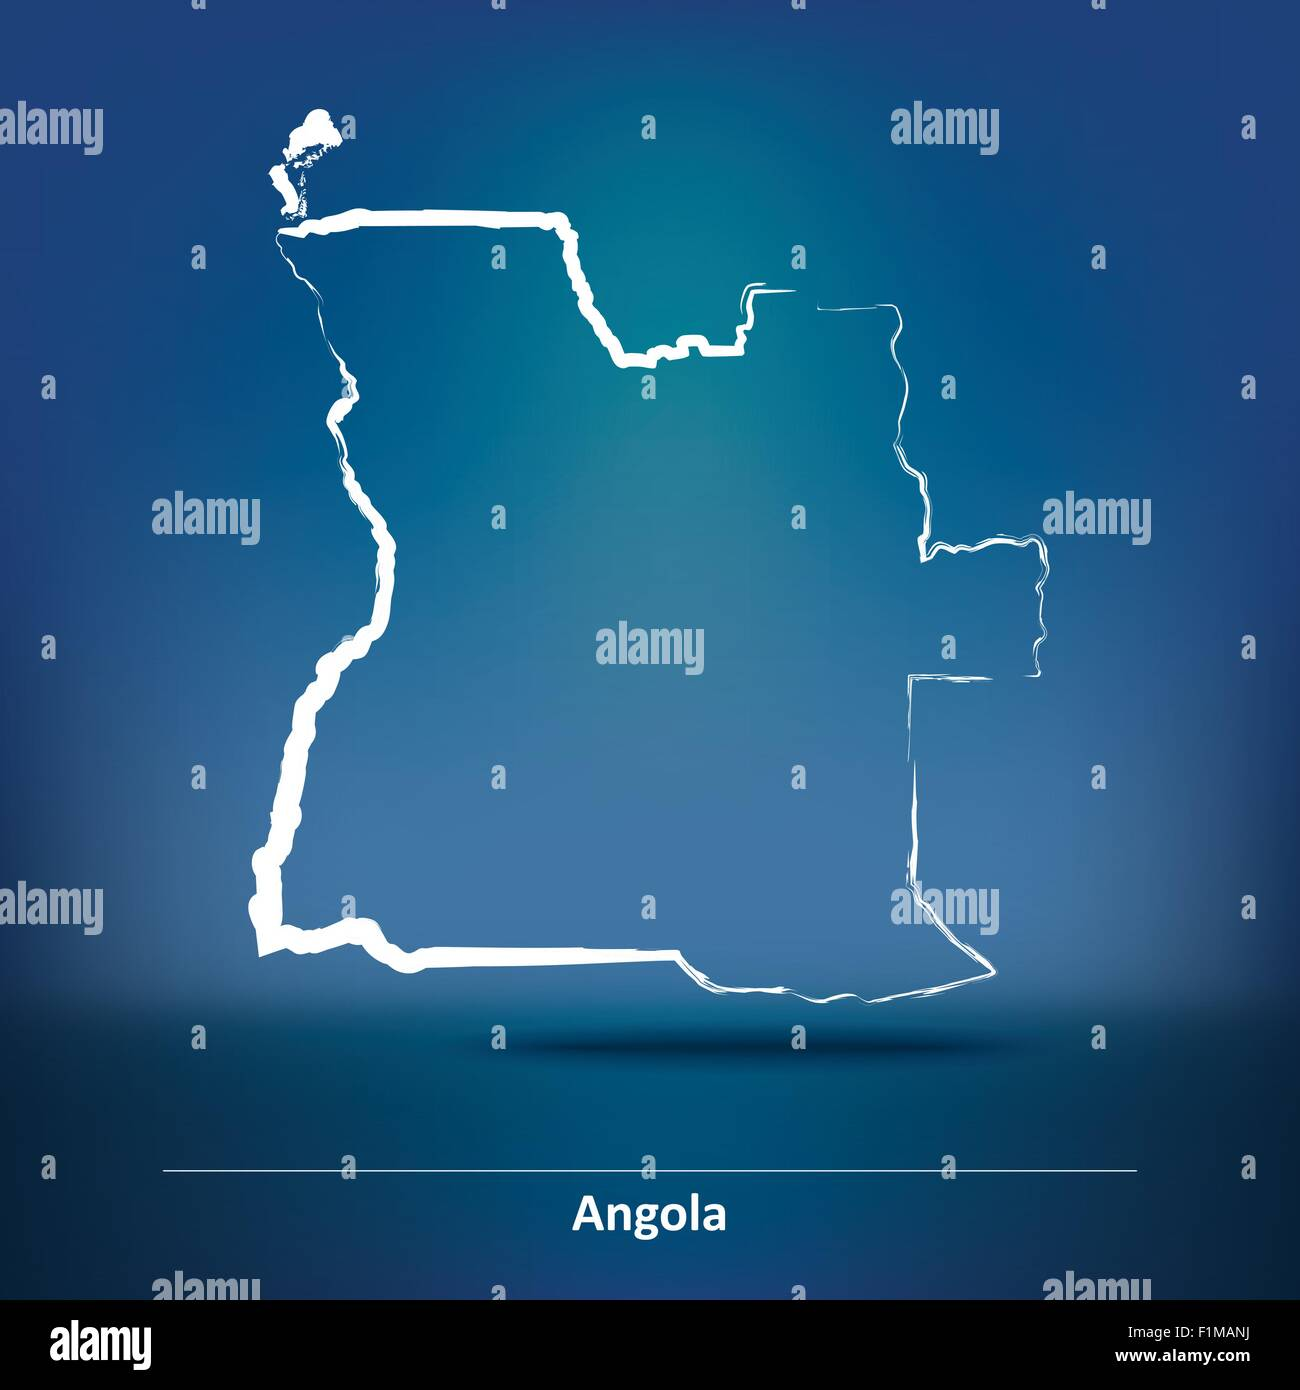 Doodle Map of Angola - vector illustration Stock Vector